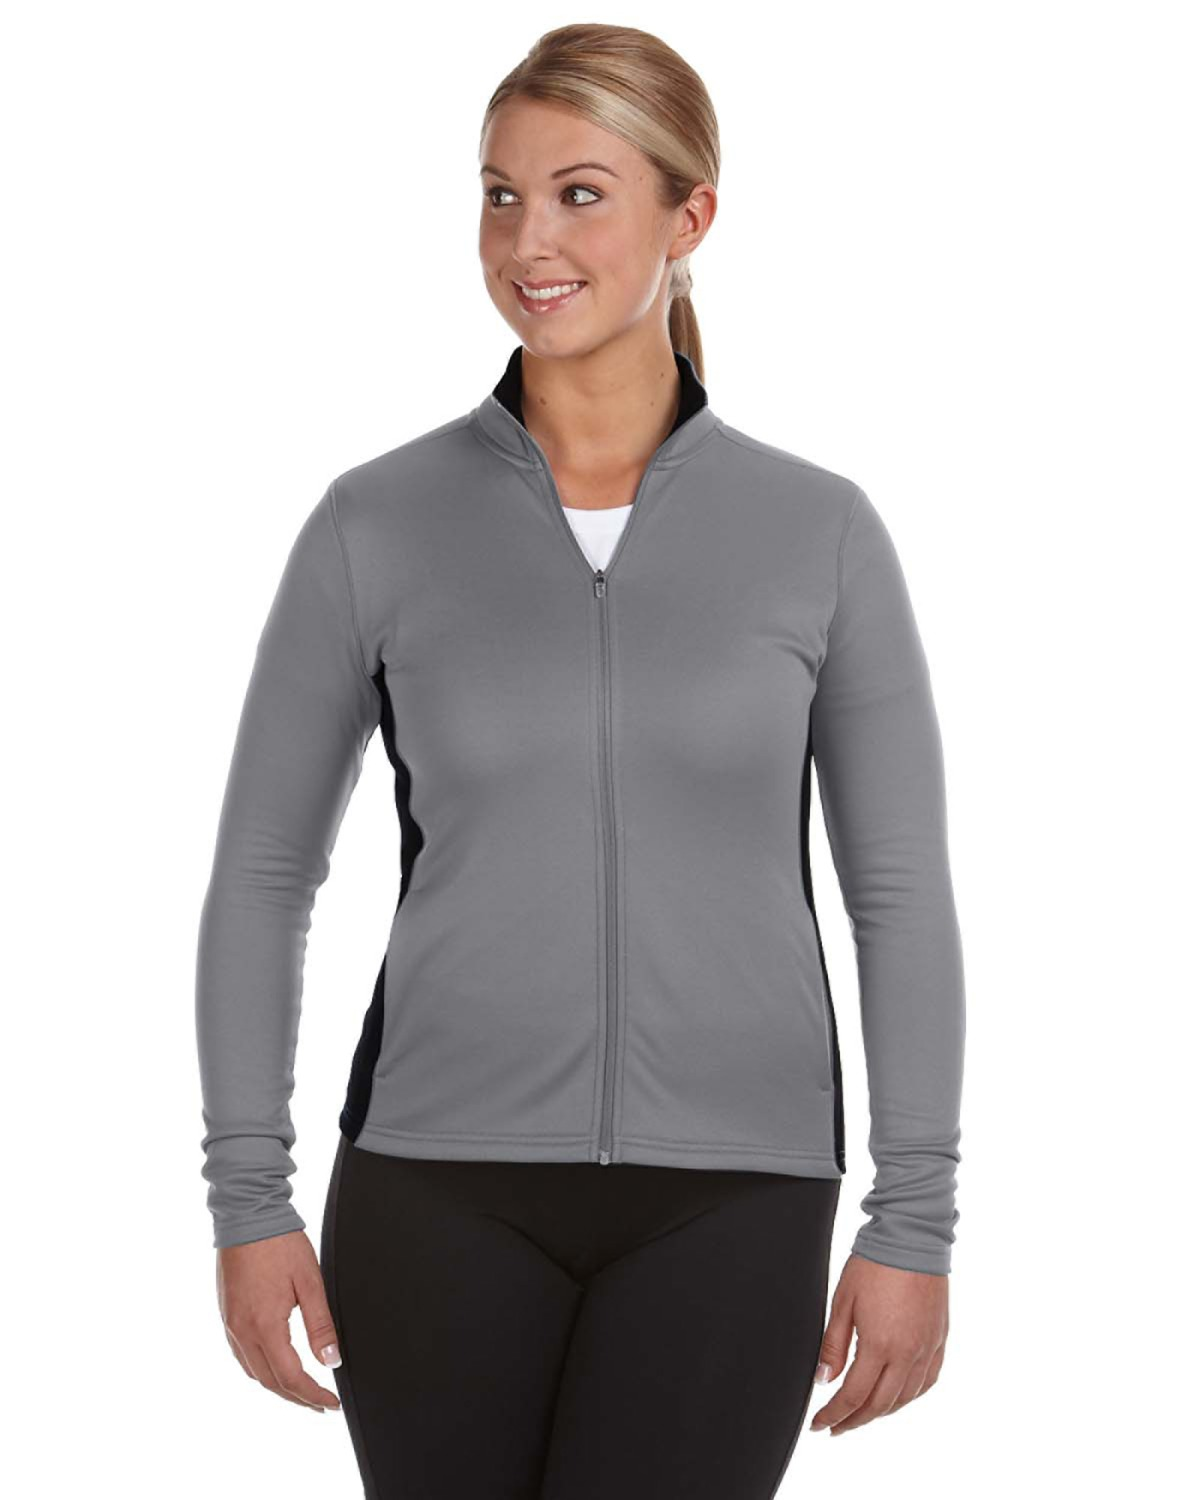 Champion S260 - Ladies' Colorblocked Performance Full-...